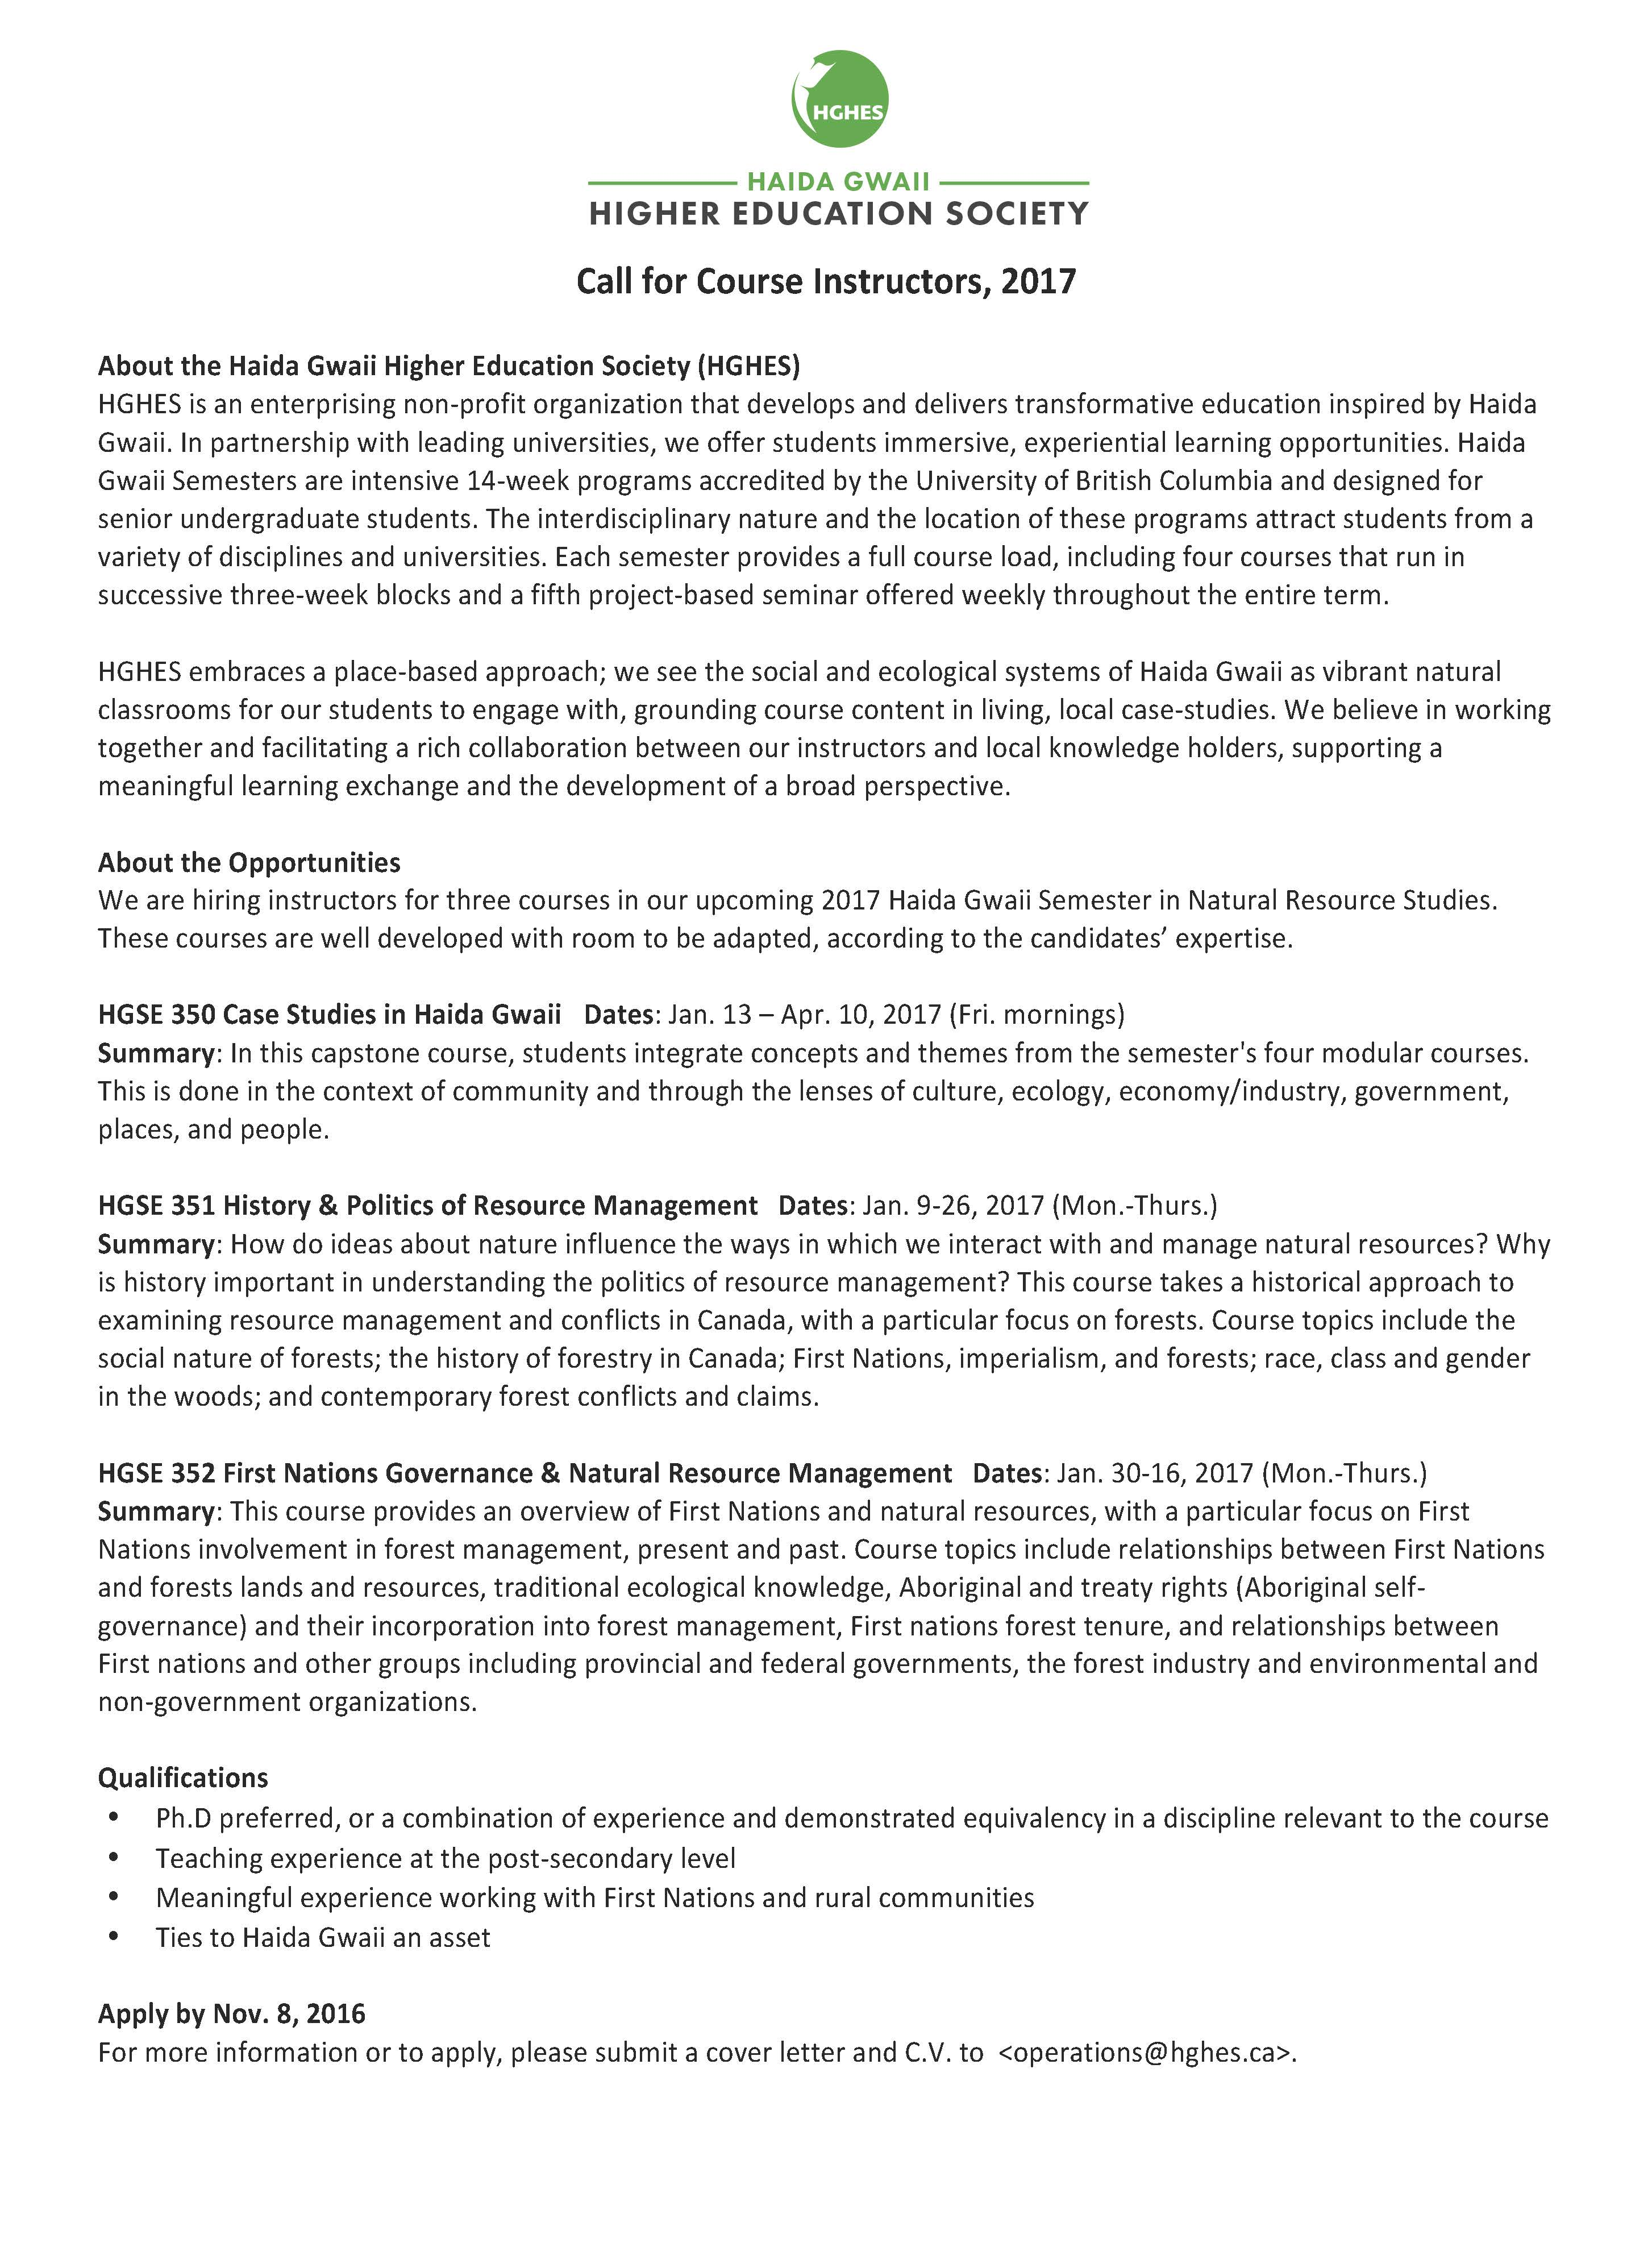 Higher Education Cover Letter from hghes.ca